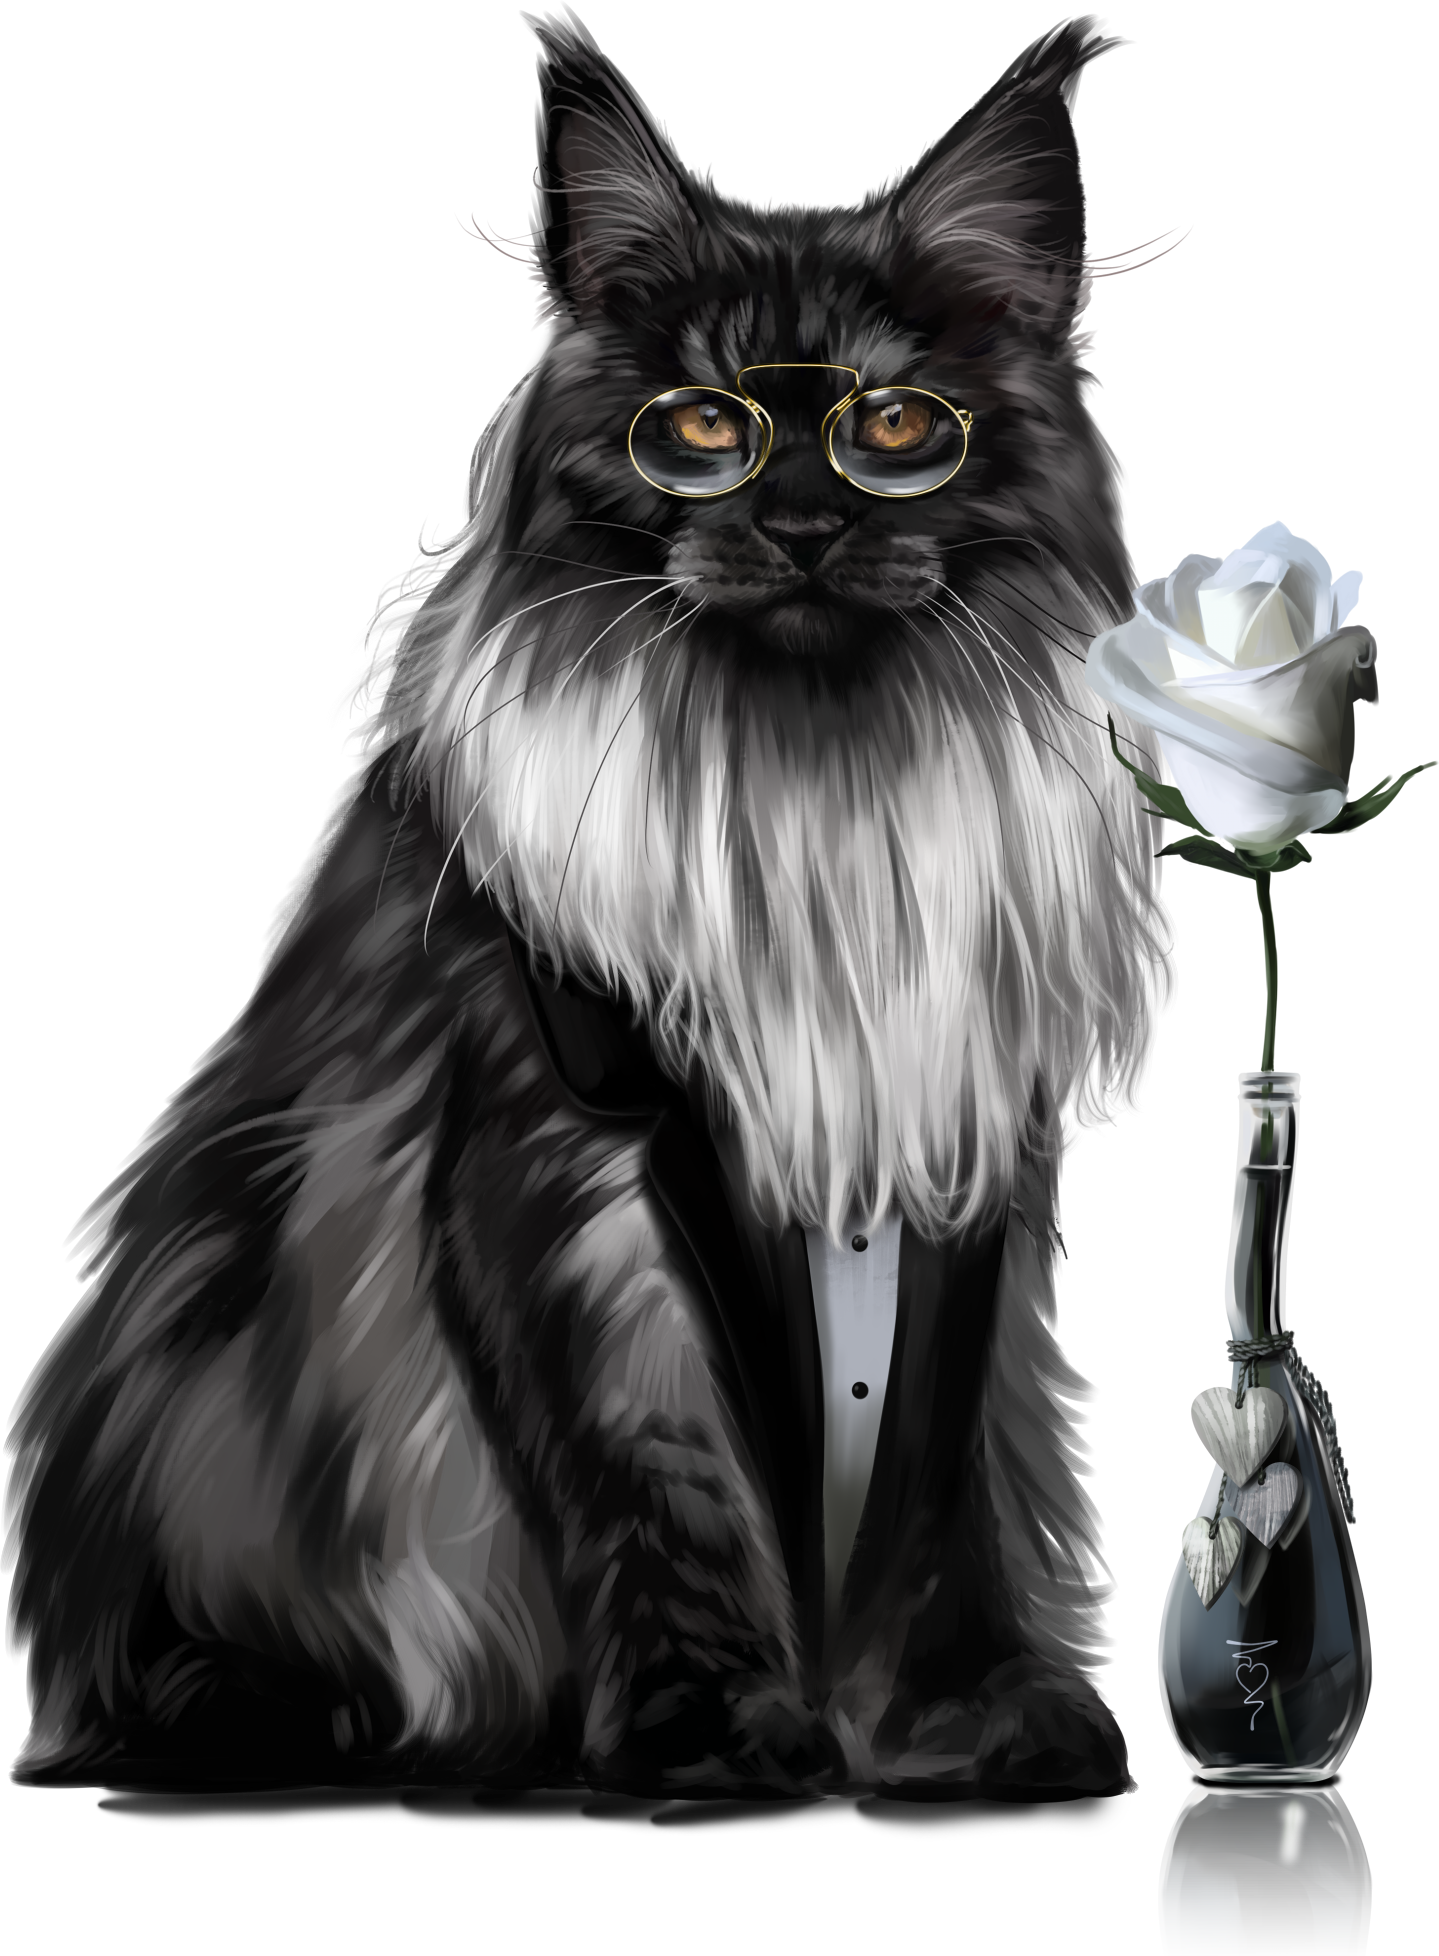 Clipart norwegian forest cat jpg black and white library Pin by Lidia on Kot Clipart / Cat Clipart | Pinterest | Cat clipart jpg black and white library